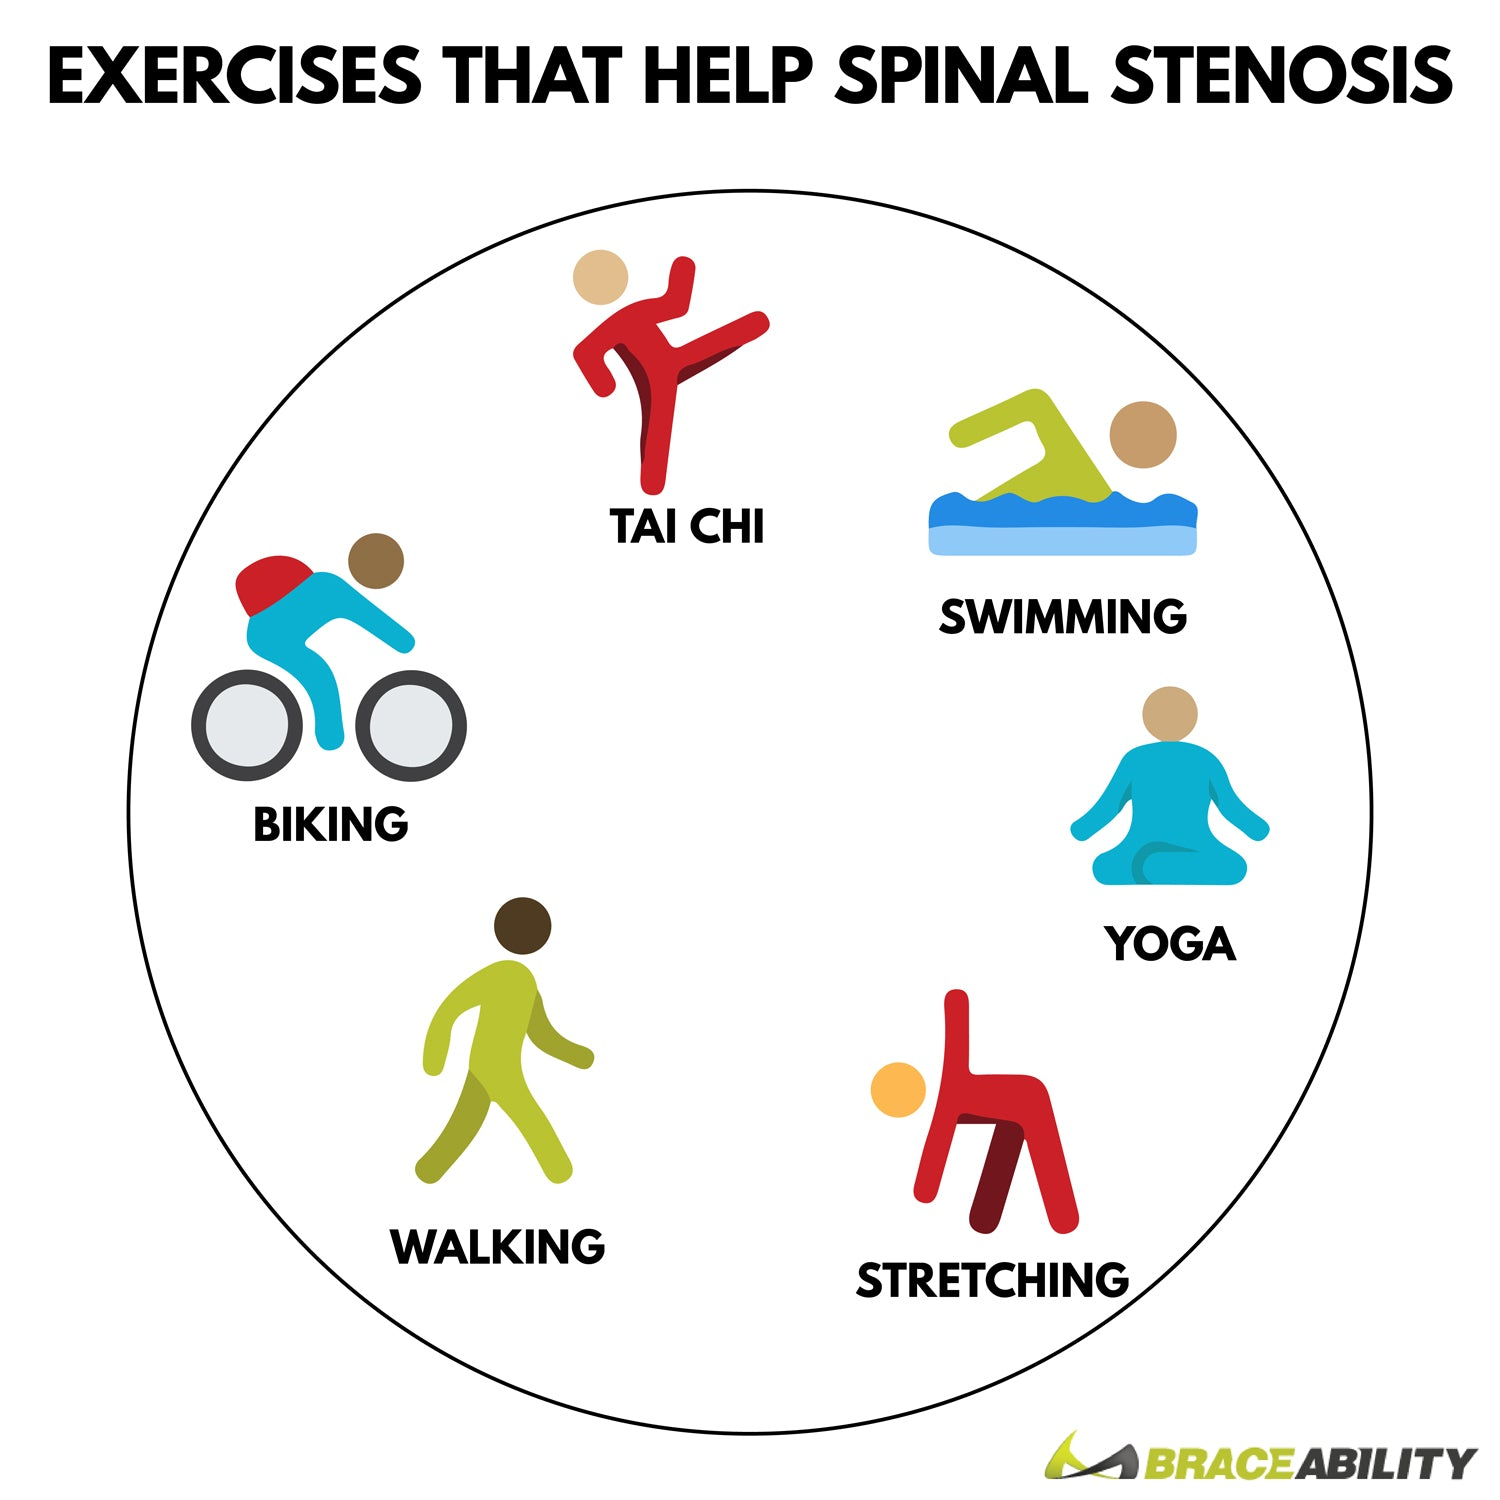 How Can You Treat Spinal Stenosis or Narrowing of the Spine?